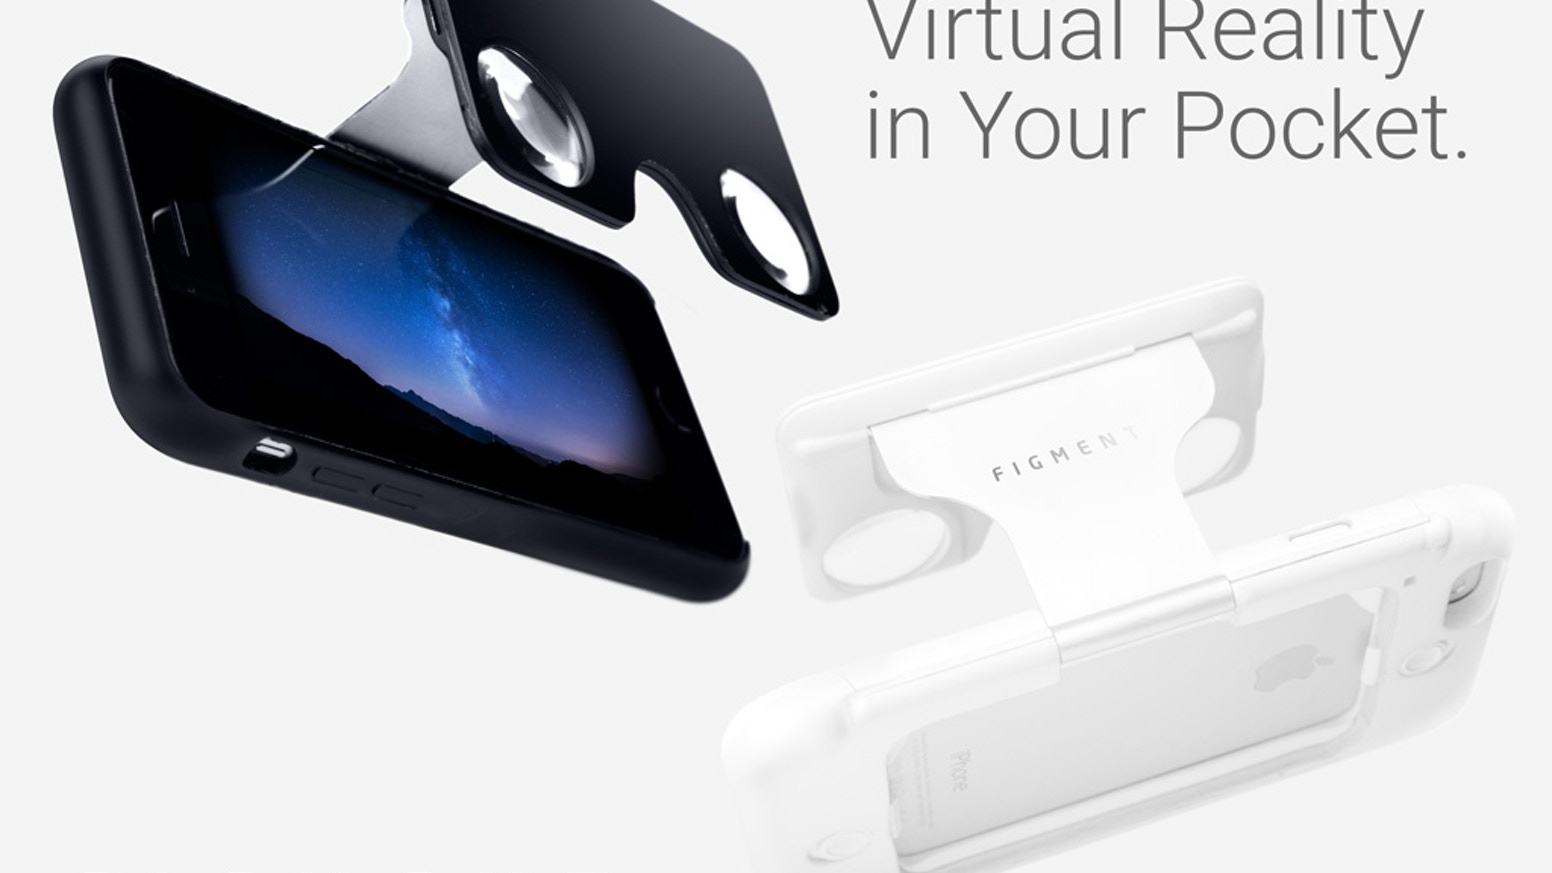 The world's first virtual reality viewer built into a sleek phone case